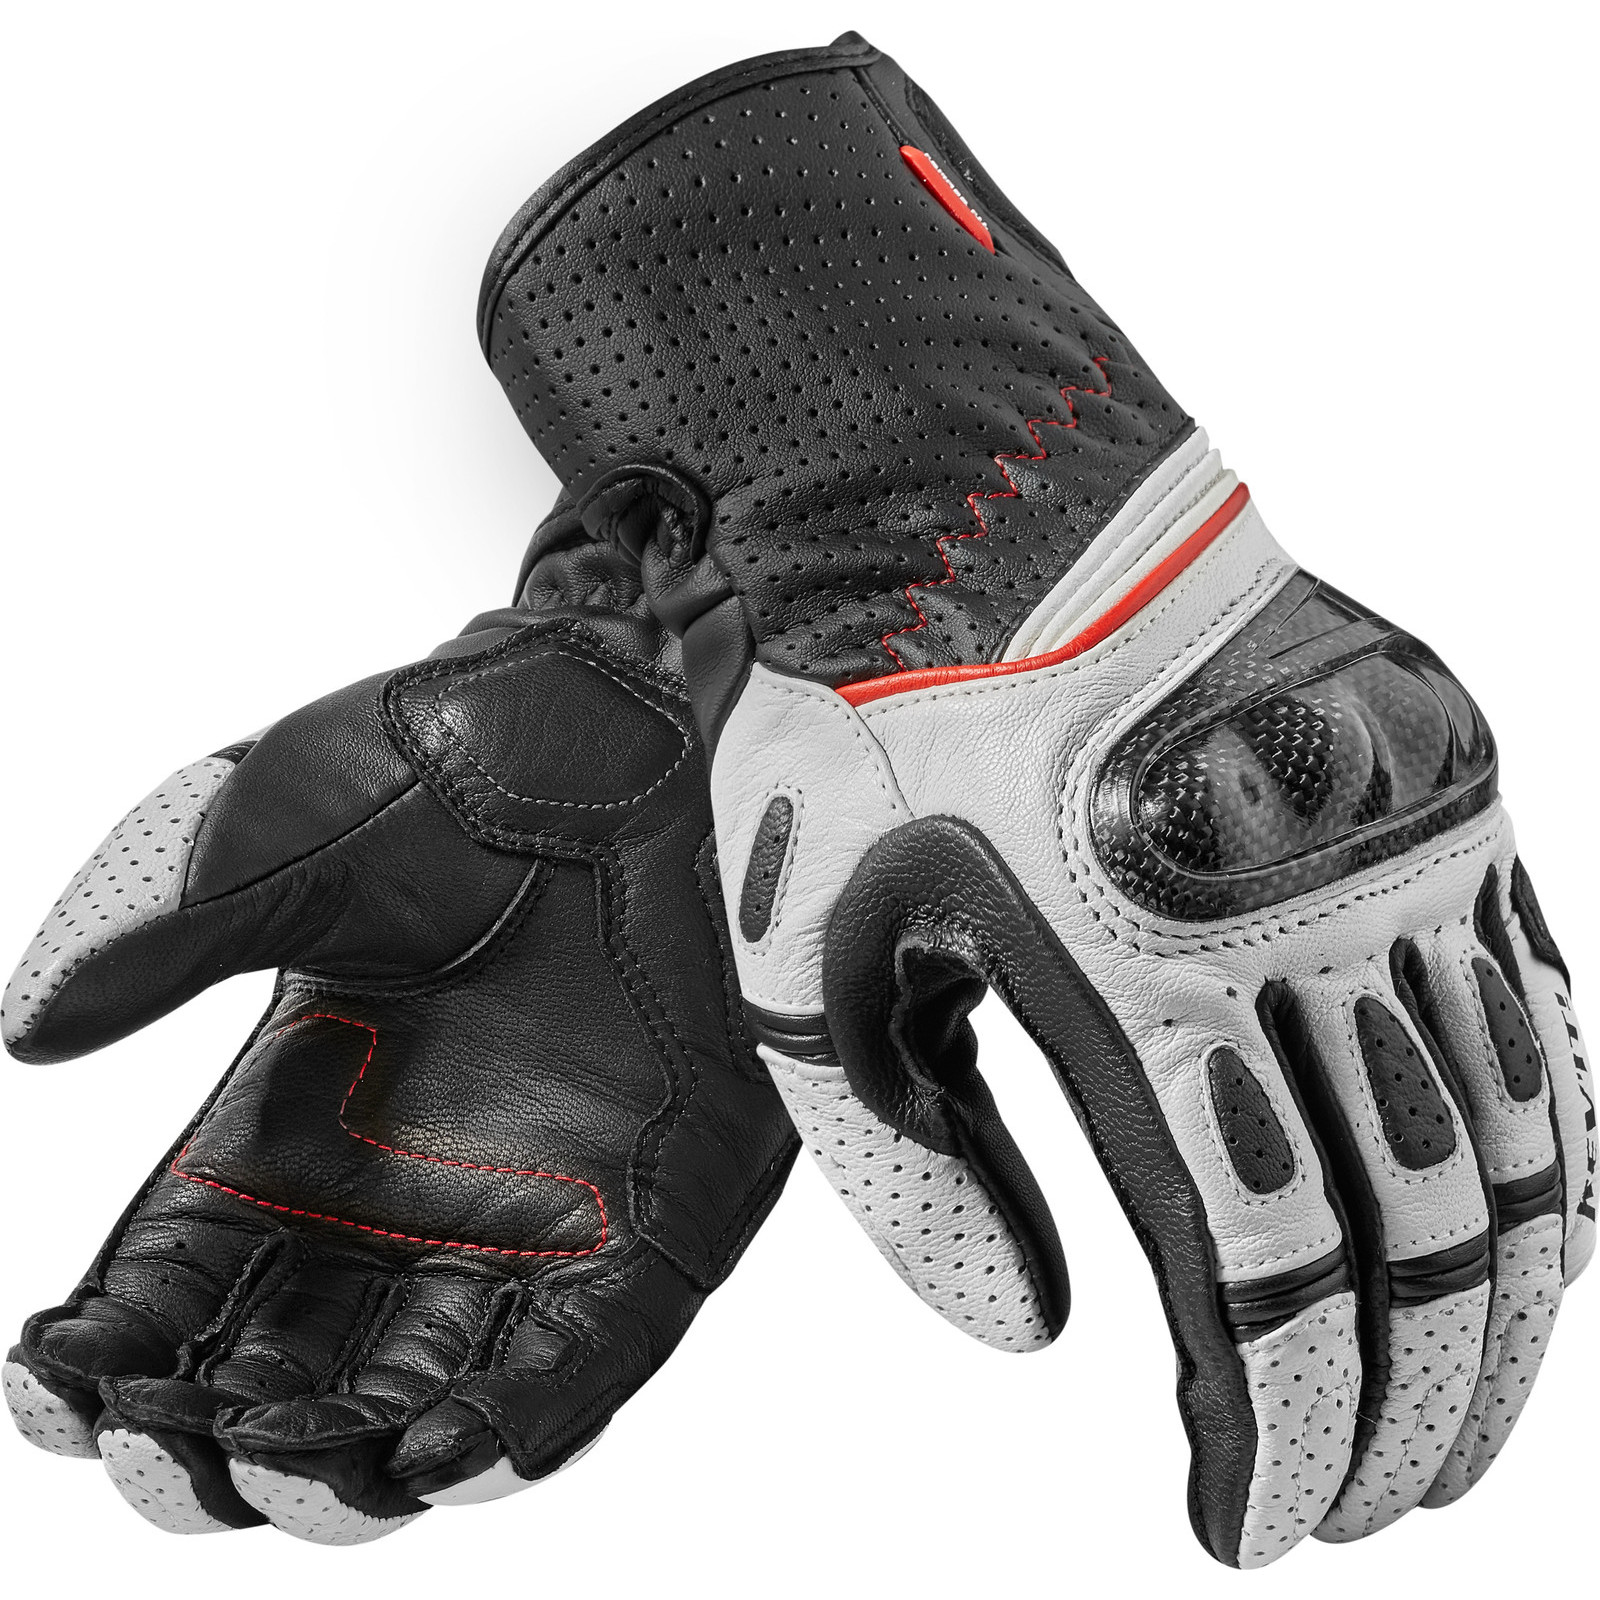 Motorcycle gloves for summer - Rev It Chevron 2 Ladies Leather Motorcycle Gloves